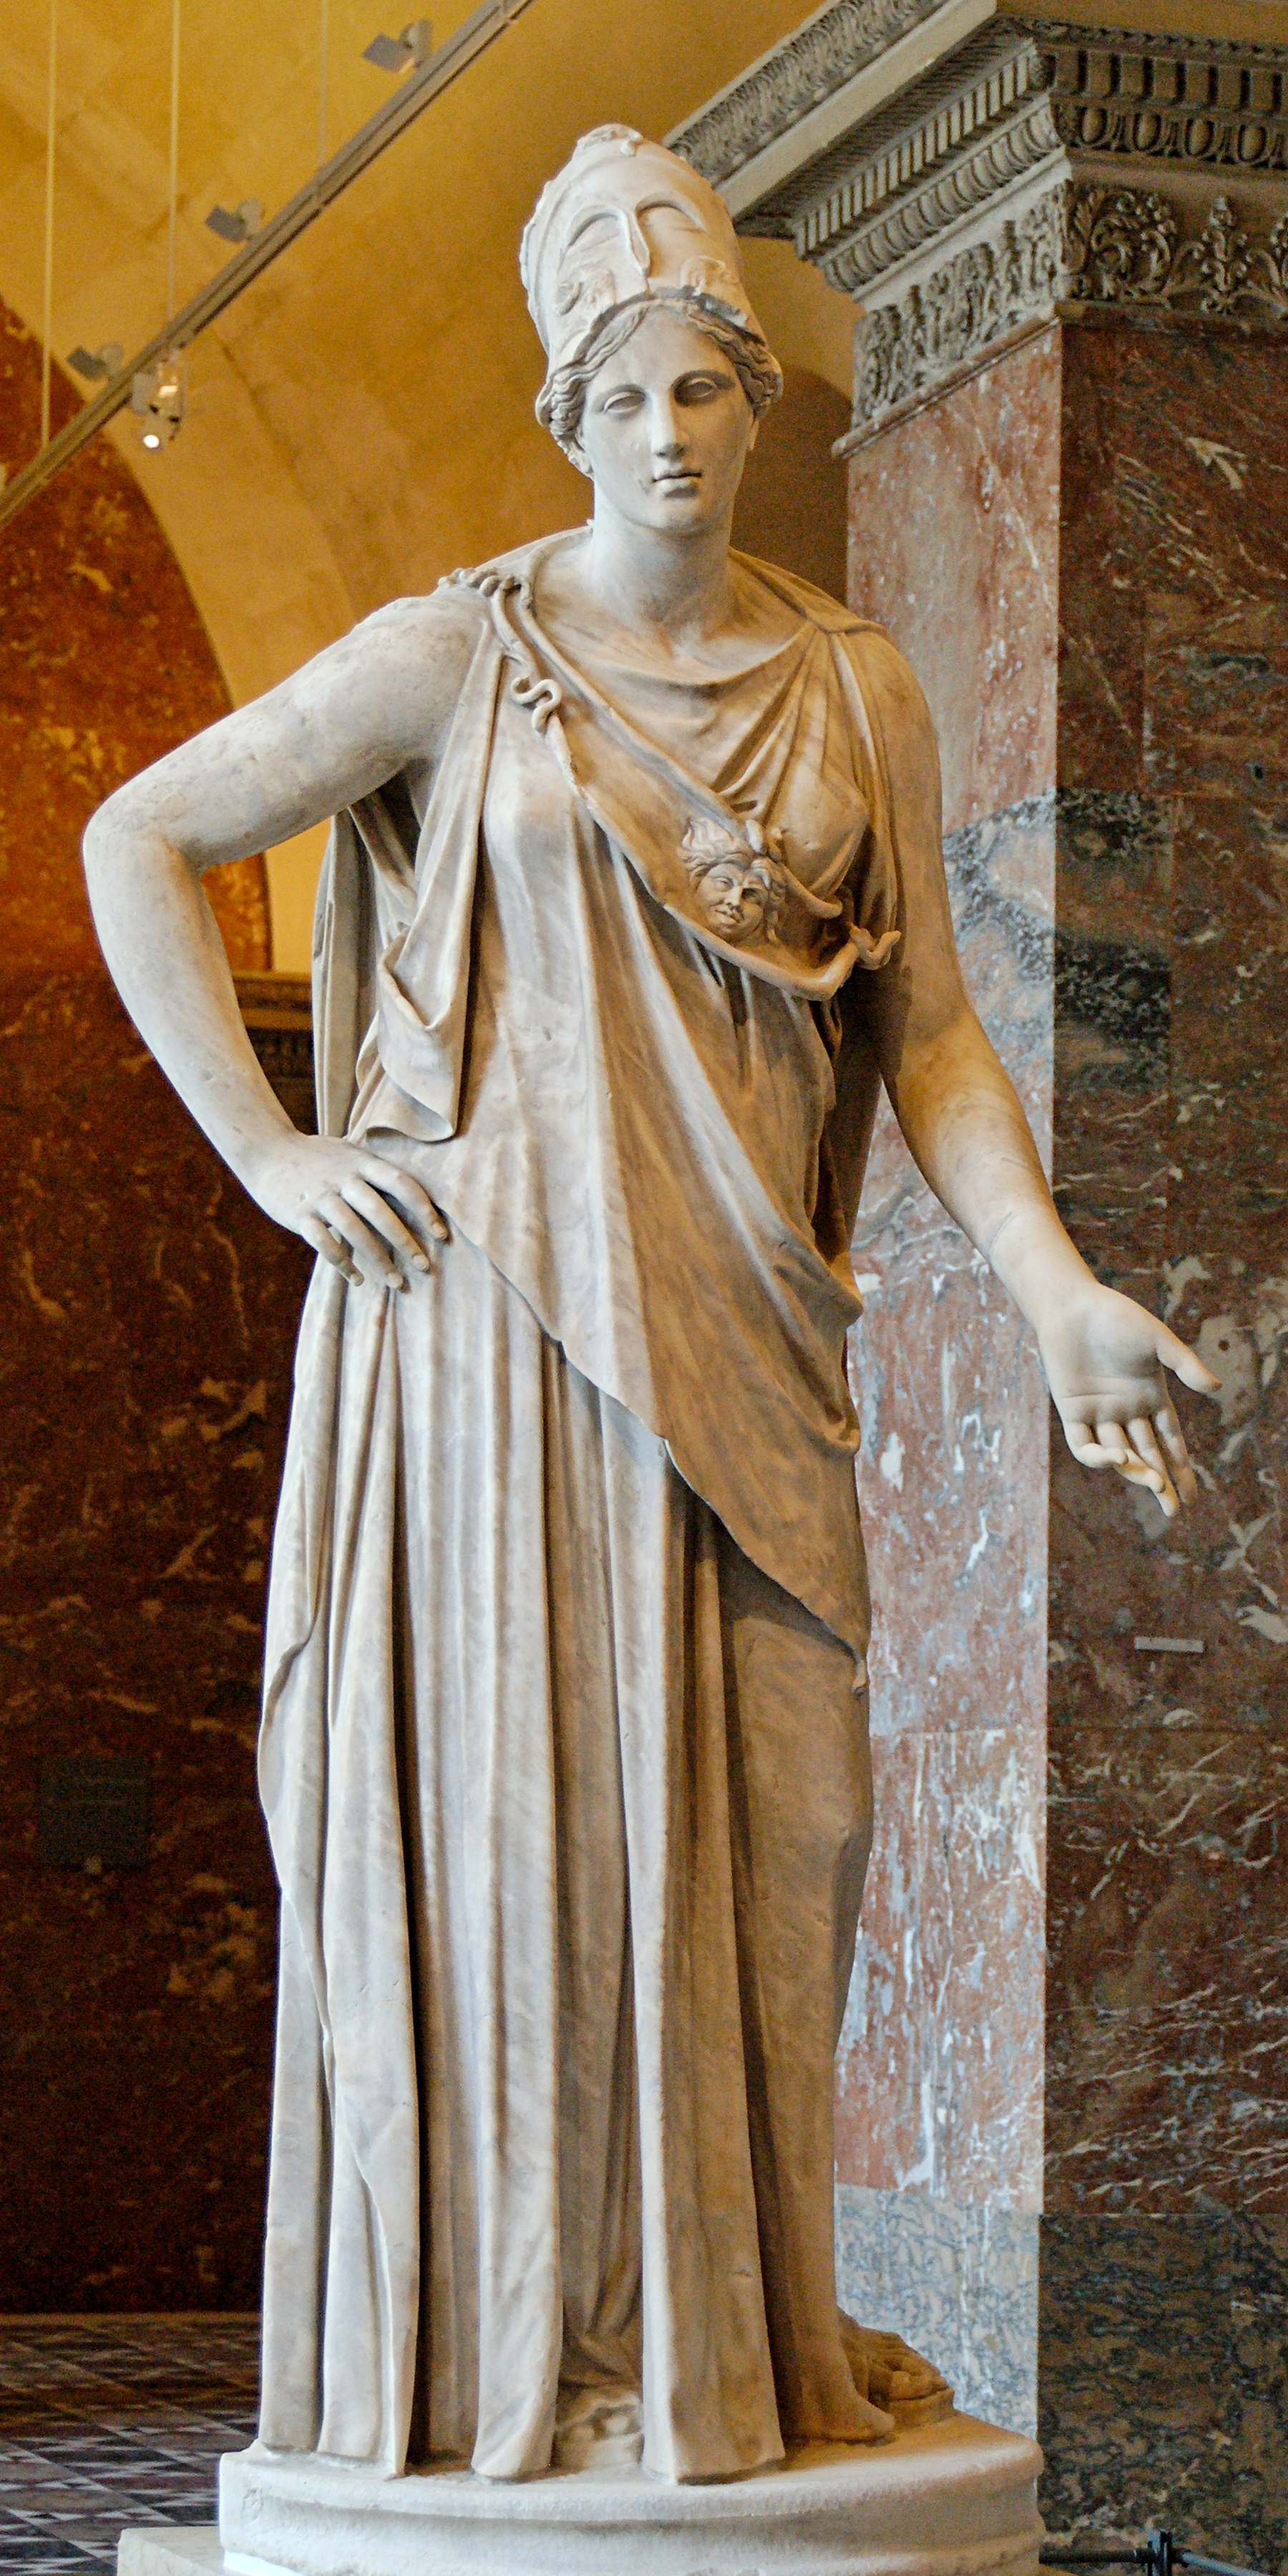 athena u2022 facts and information on greek goddess athena